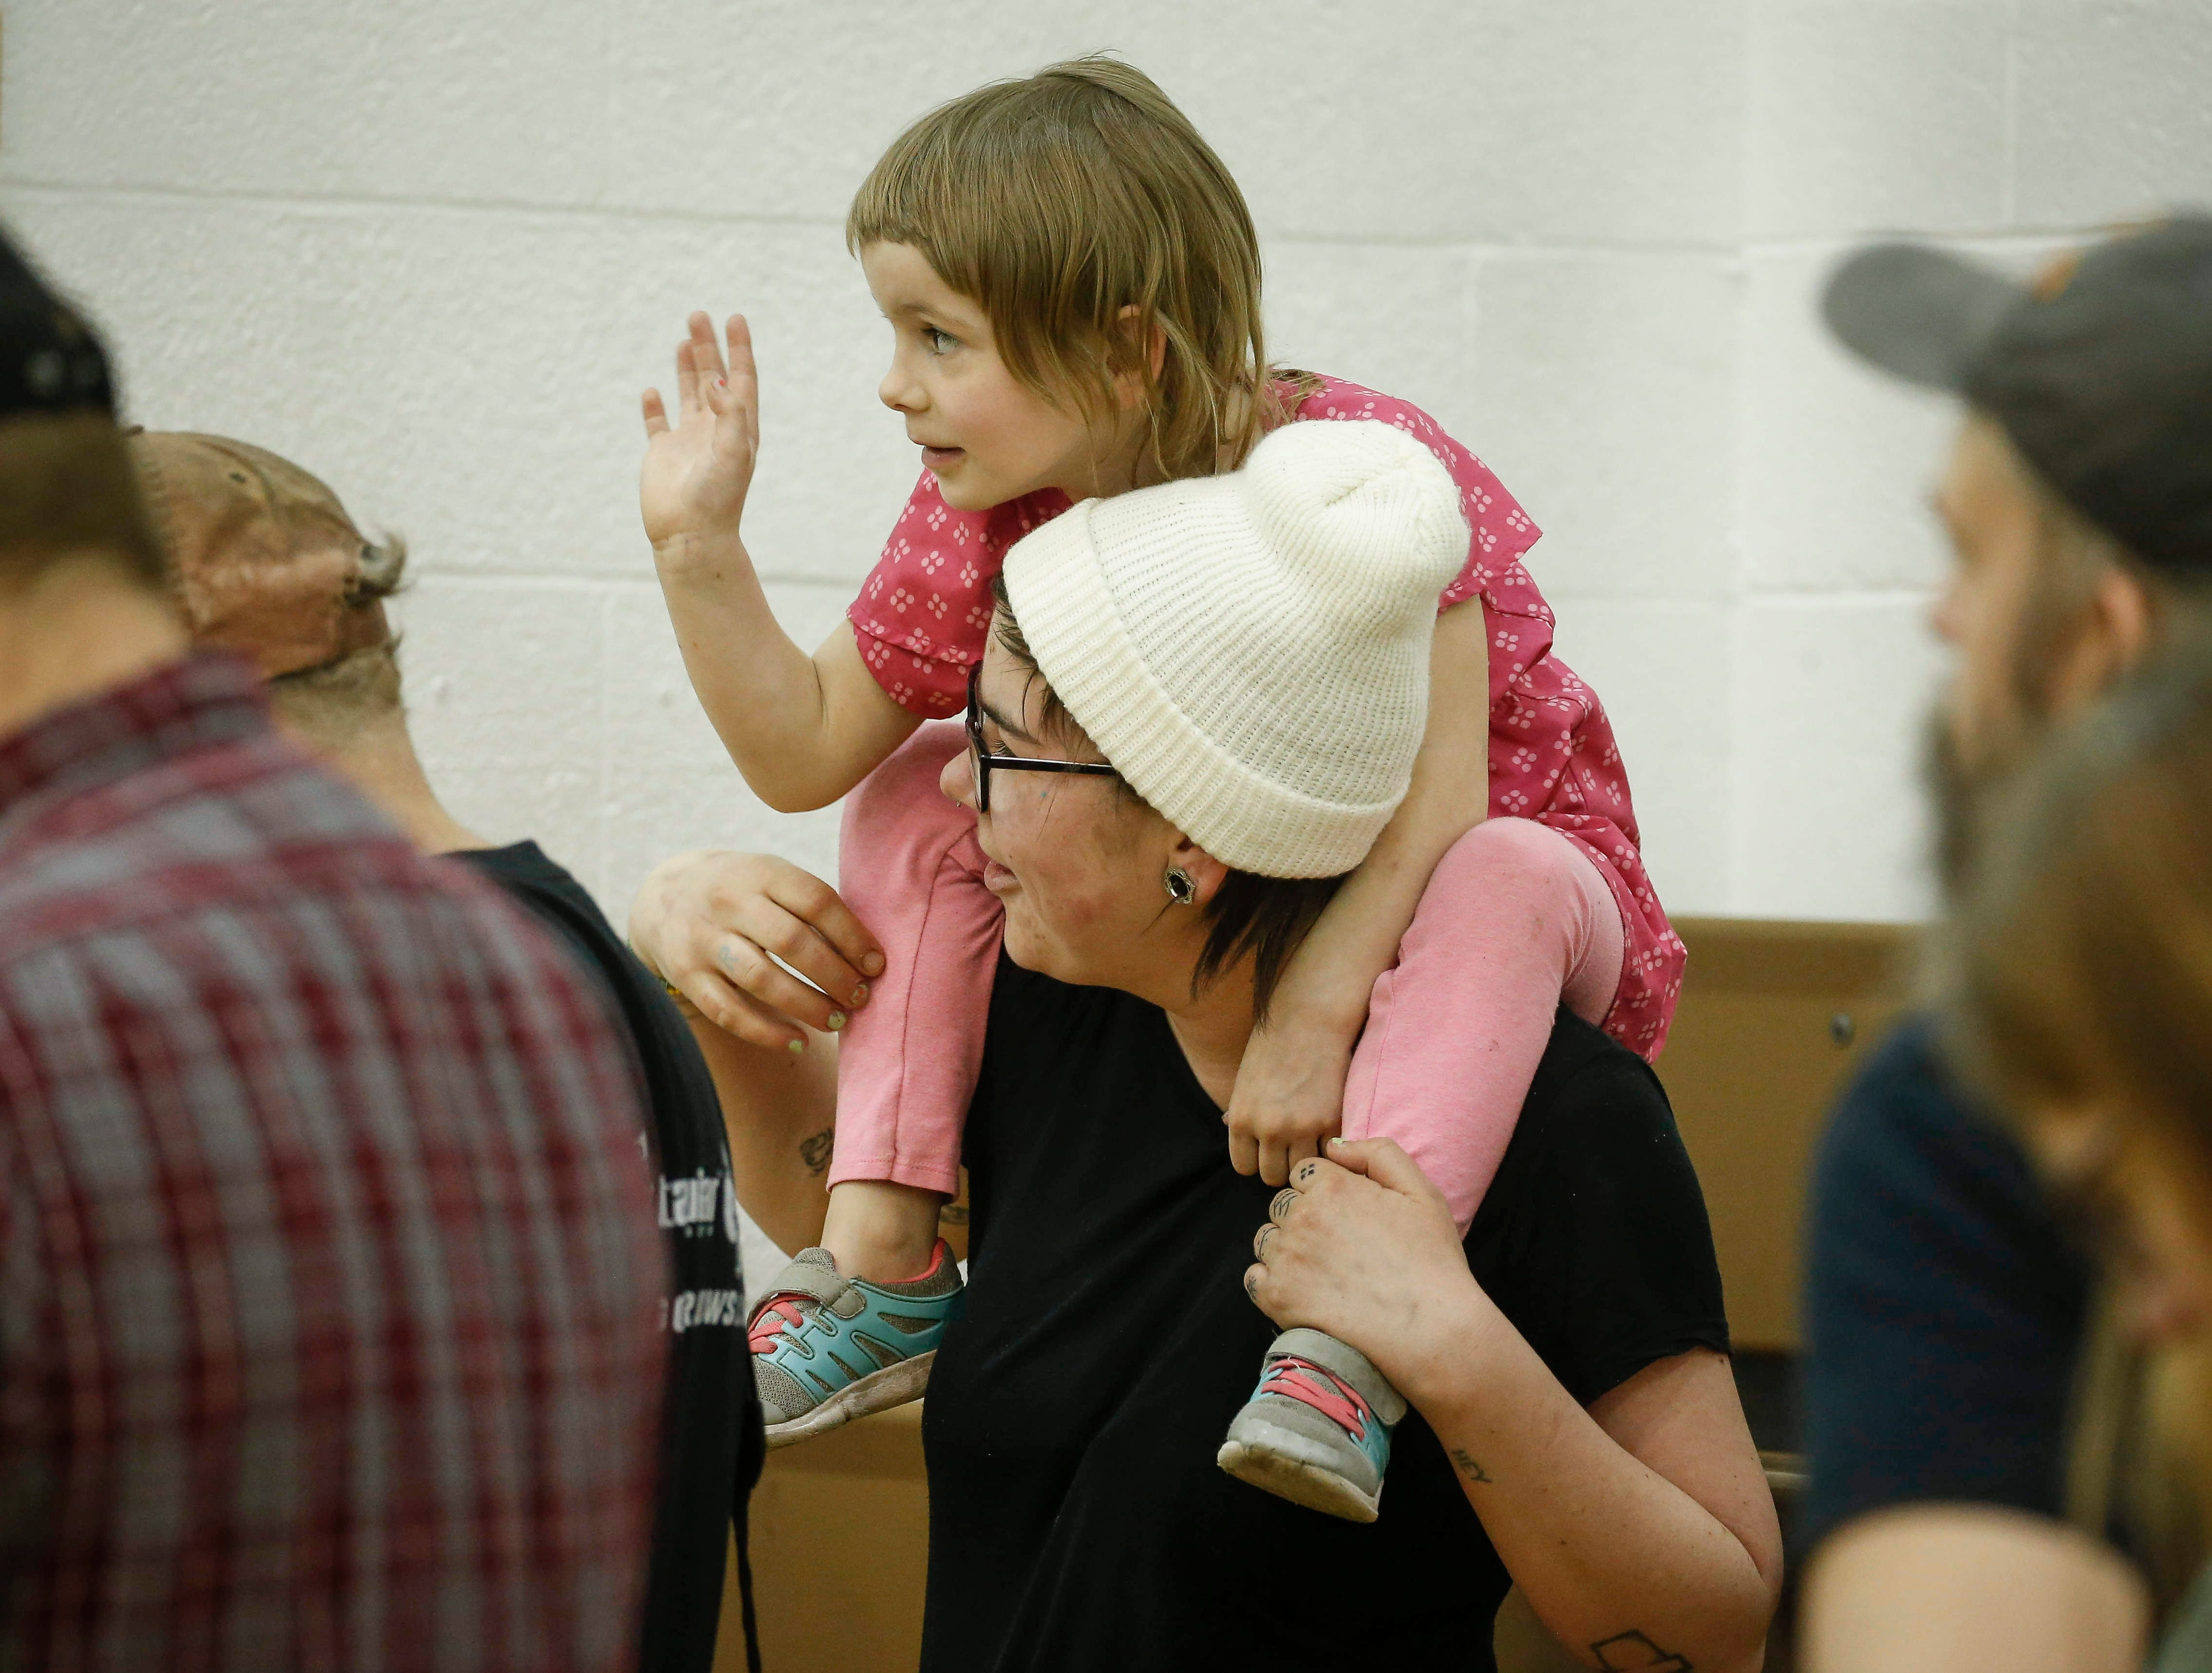 A young girl waves to U.S. Sen. Bernie Sanders as he speaks during a town hall style meeting at West Middle School in Muscatine on Saturday, April 6, 2019.